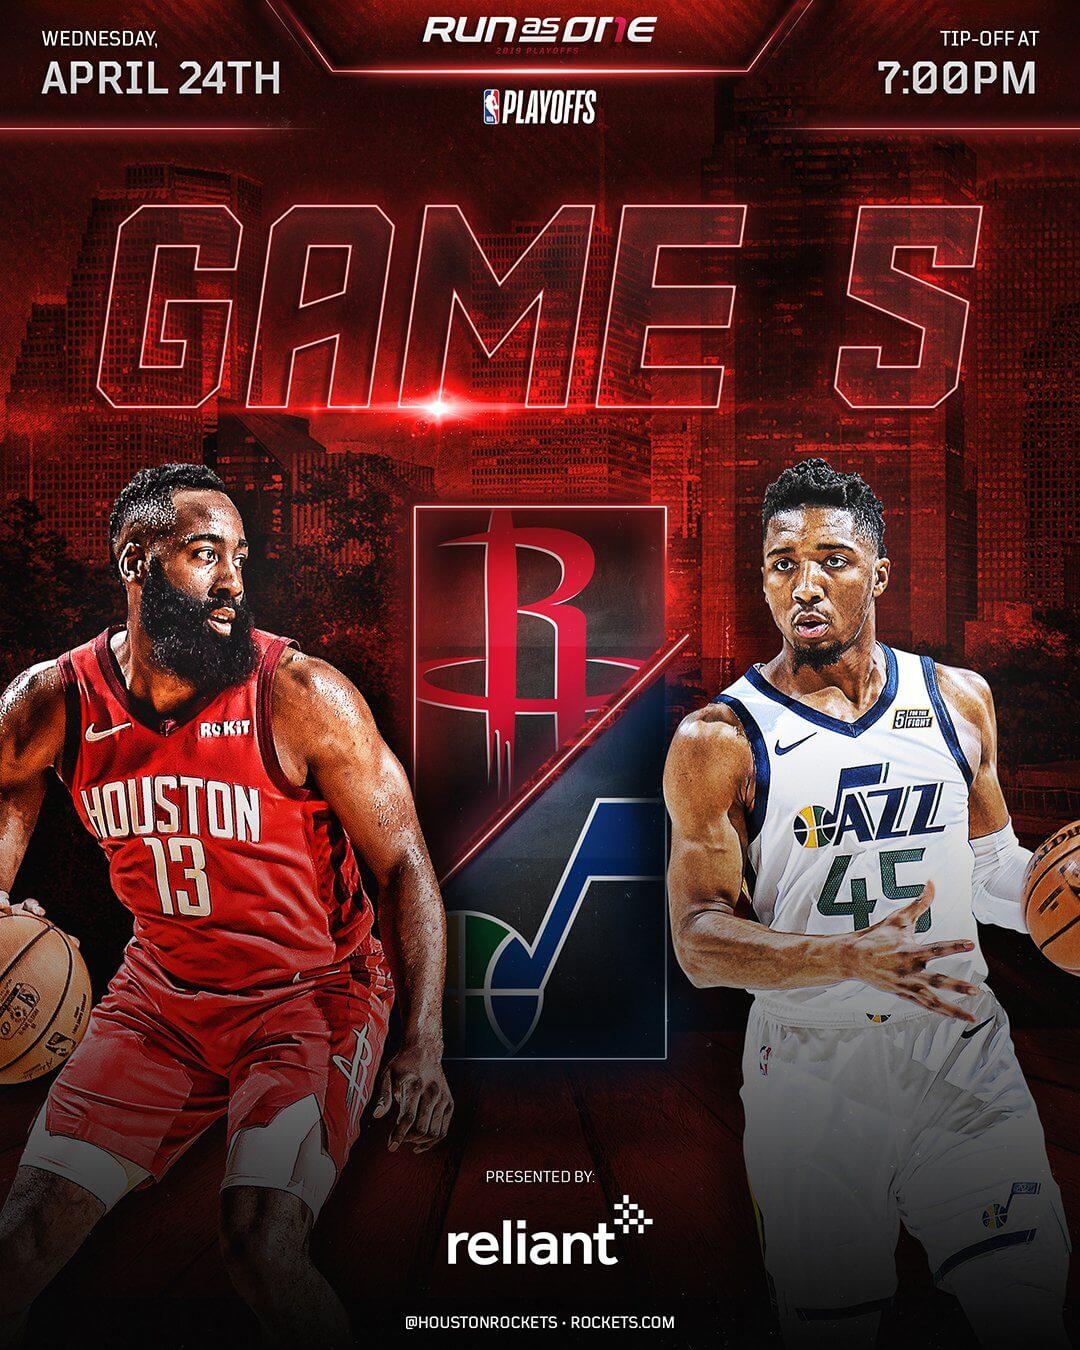 Warriors Vs Rockets Live Stream Game 3: Flipboard: Austin Rivers Out With Illness For Rockets Vs